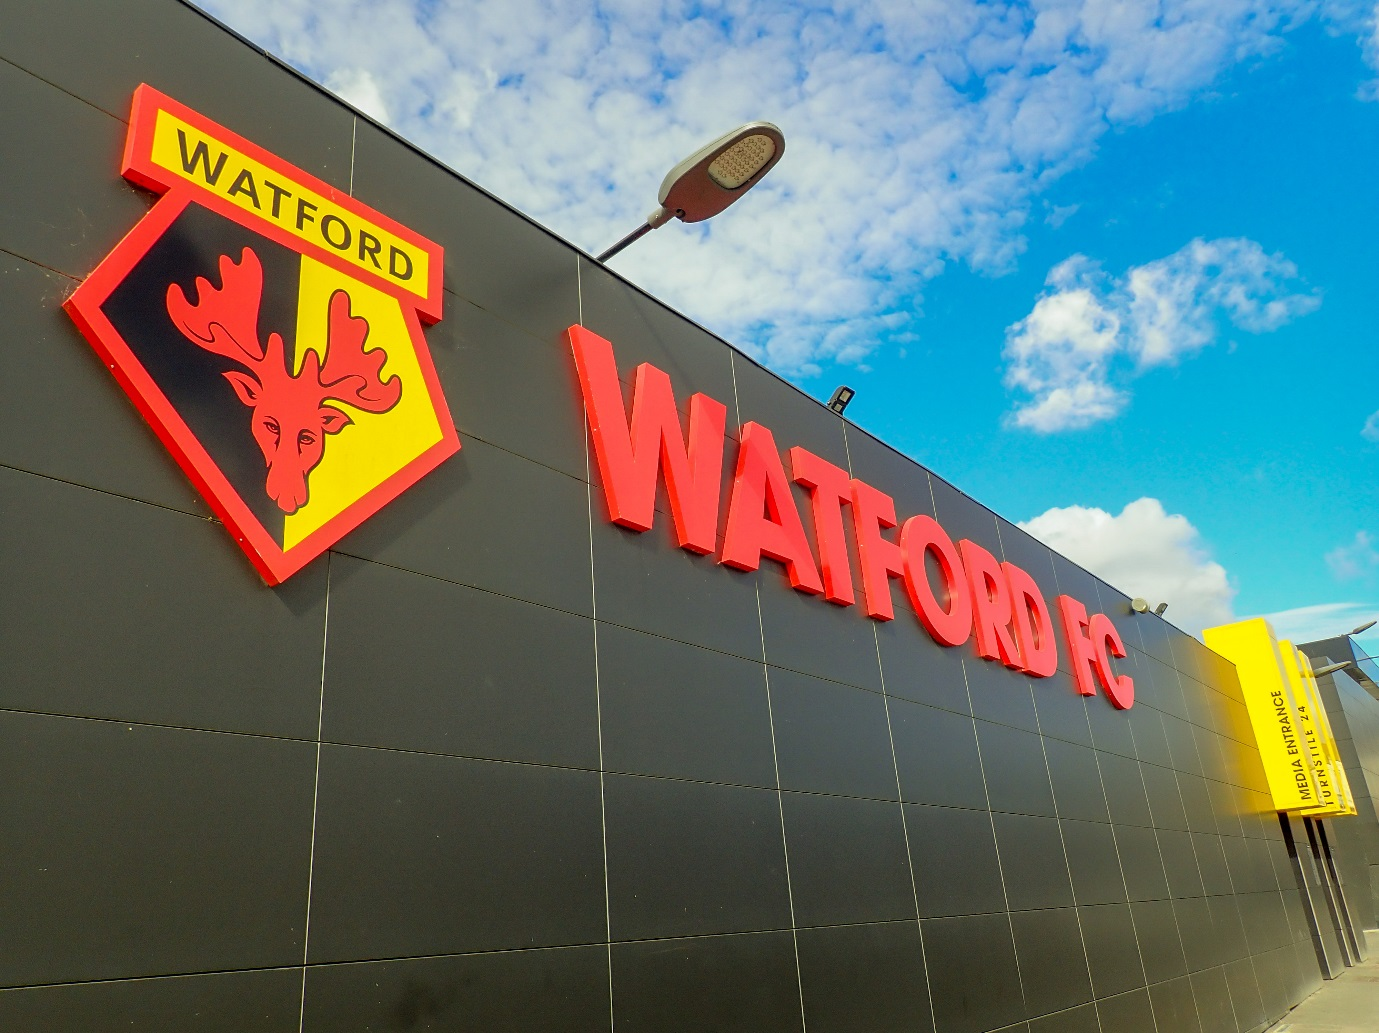 Stand by Watford: the Premier League side yet to win a game